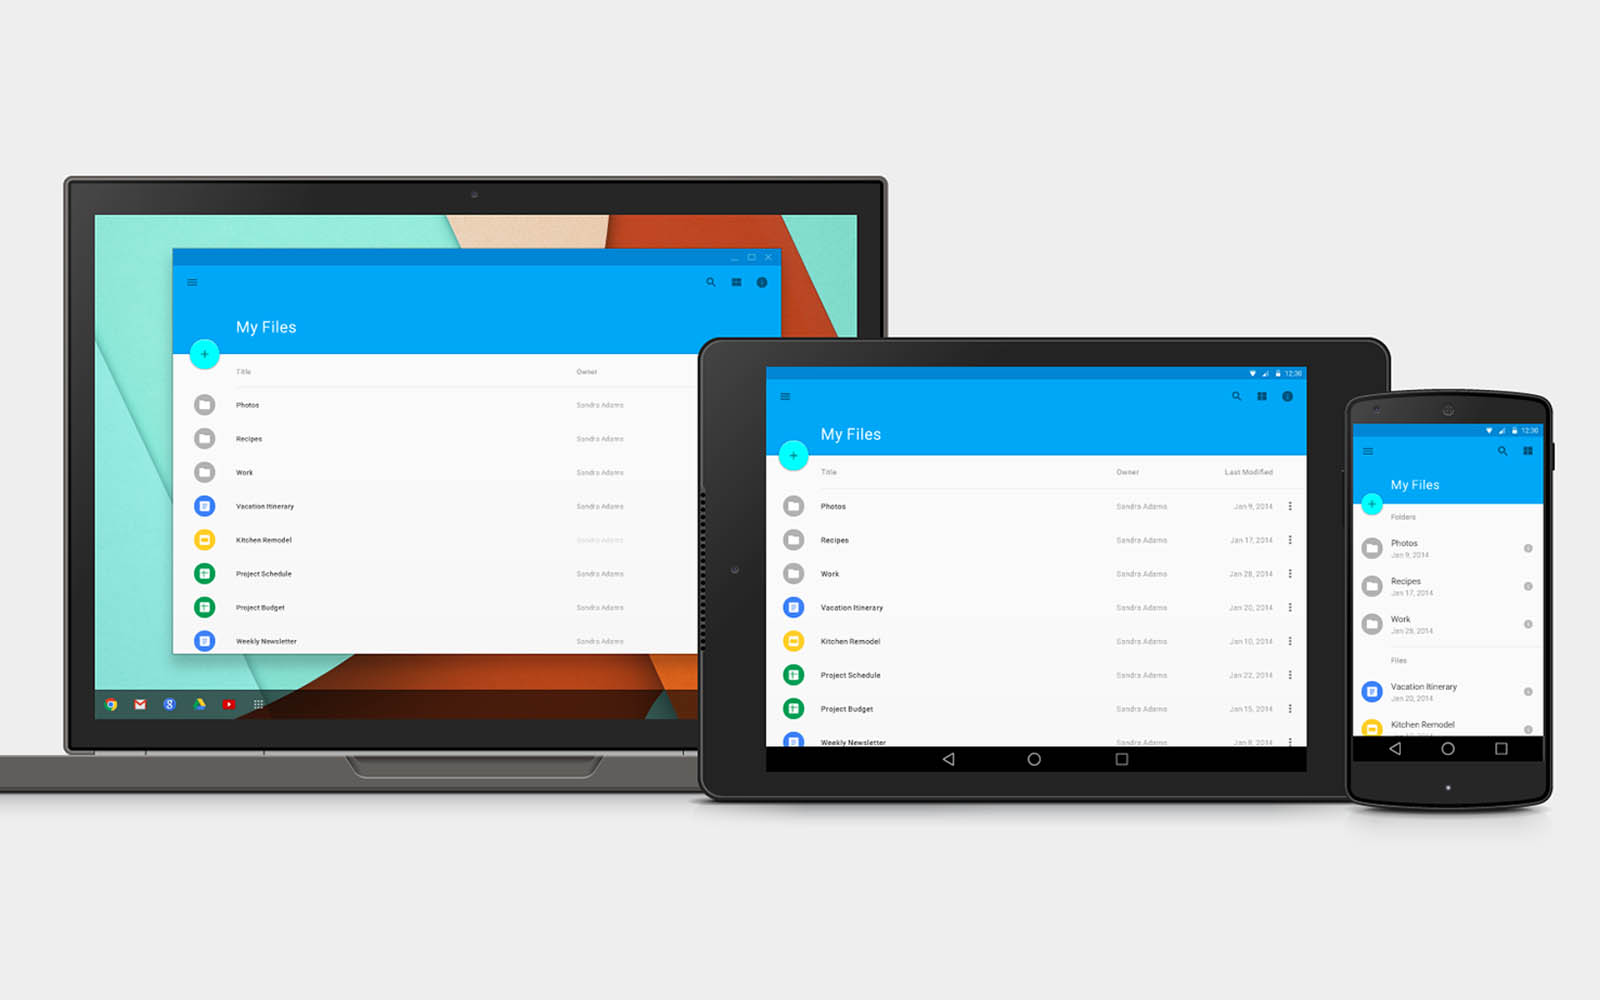 Build well-crafted apps with Material Design and Vue 2